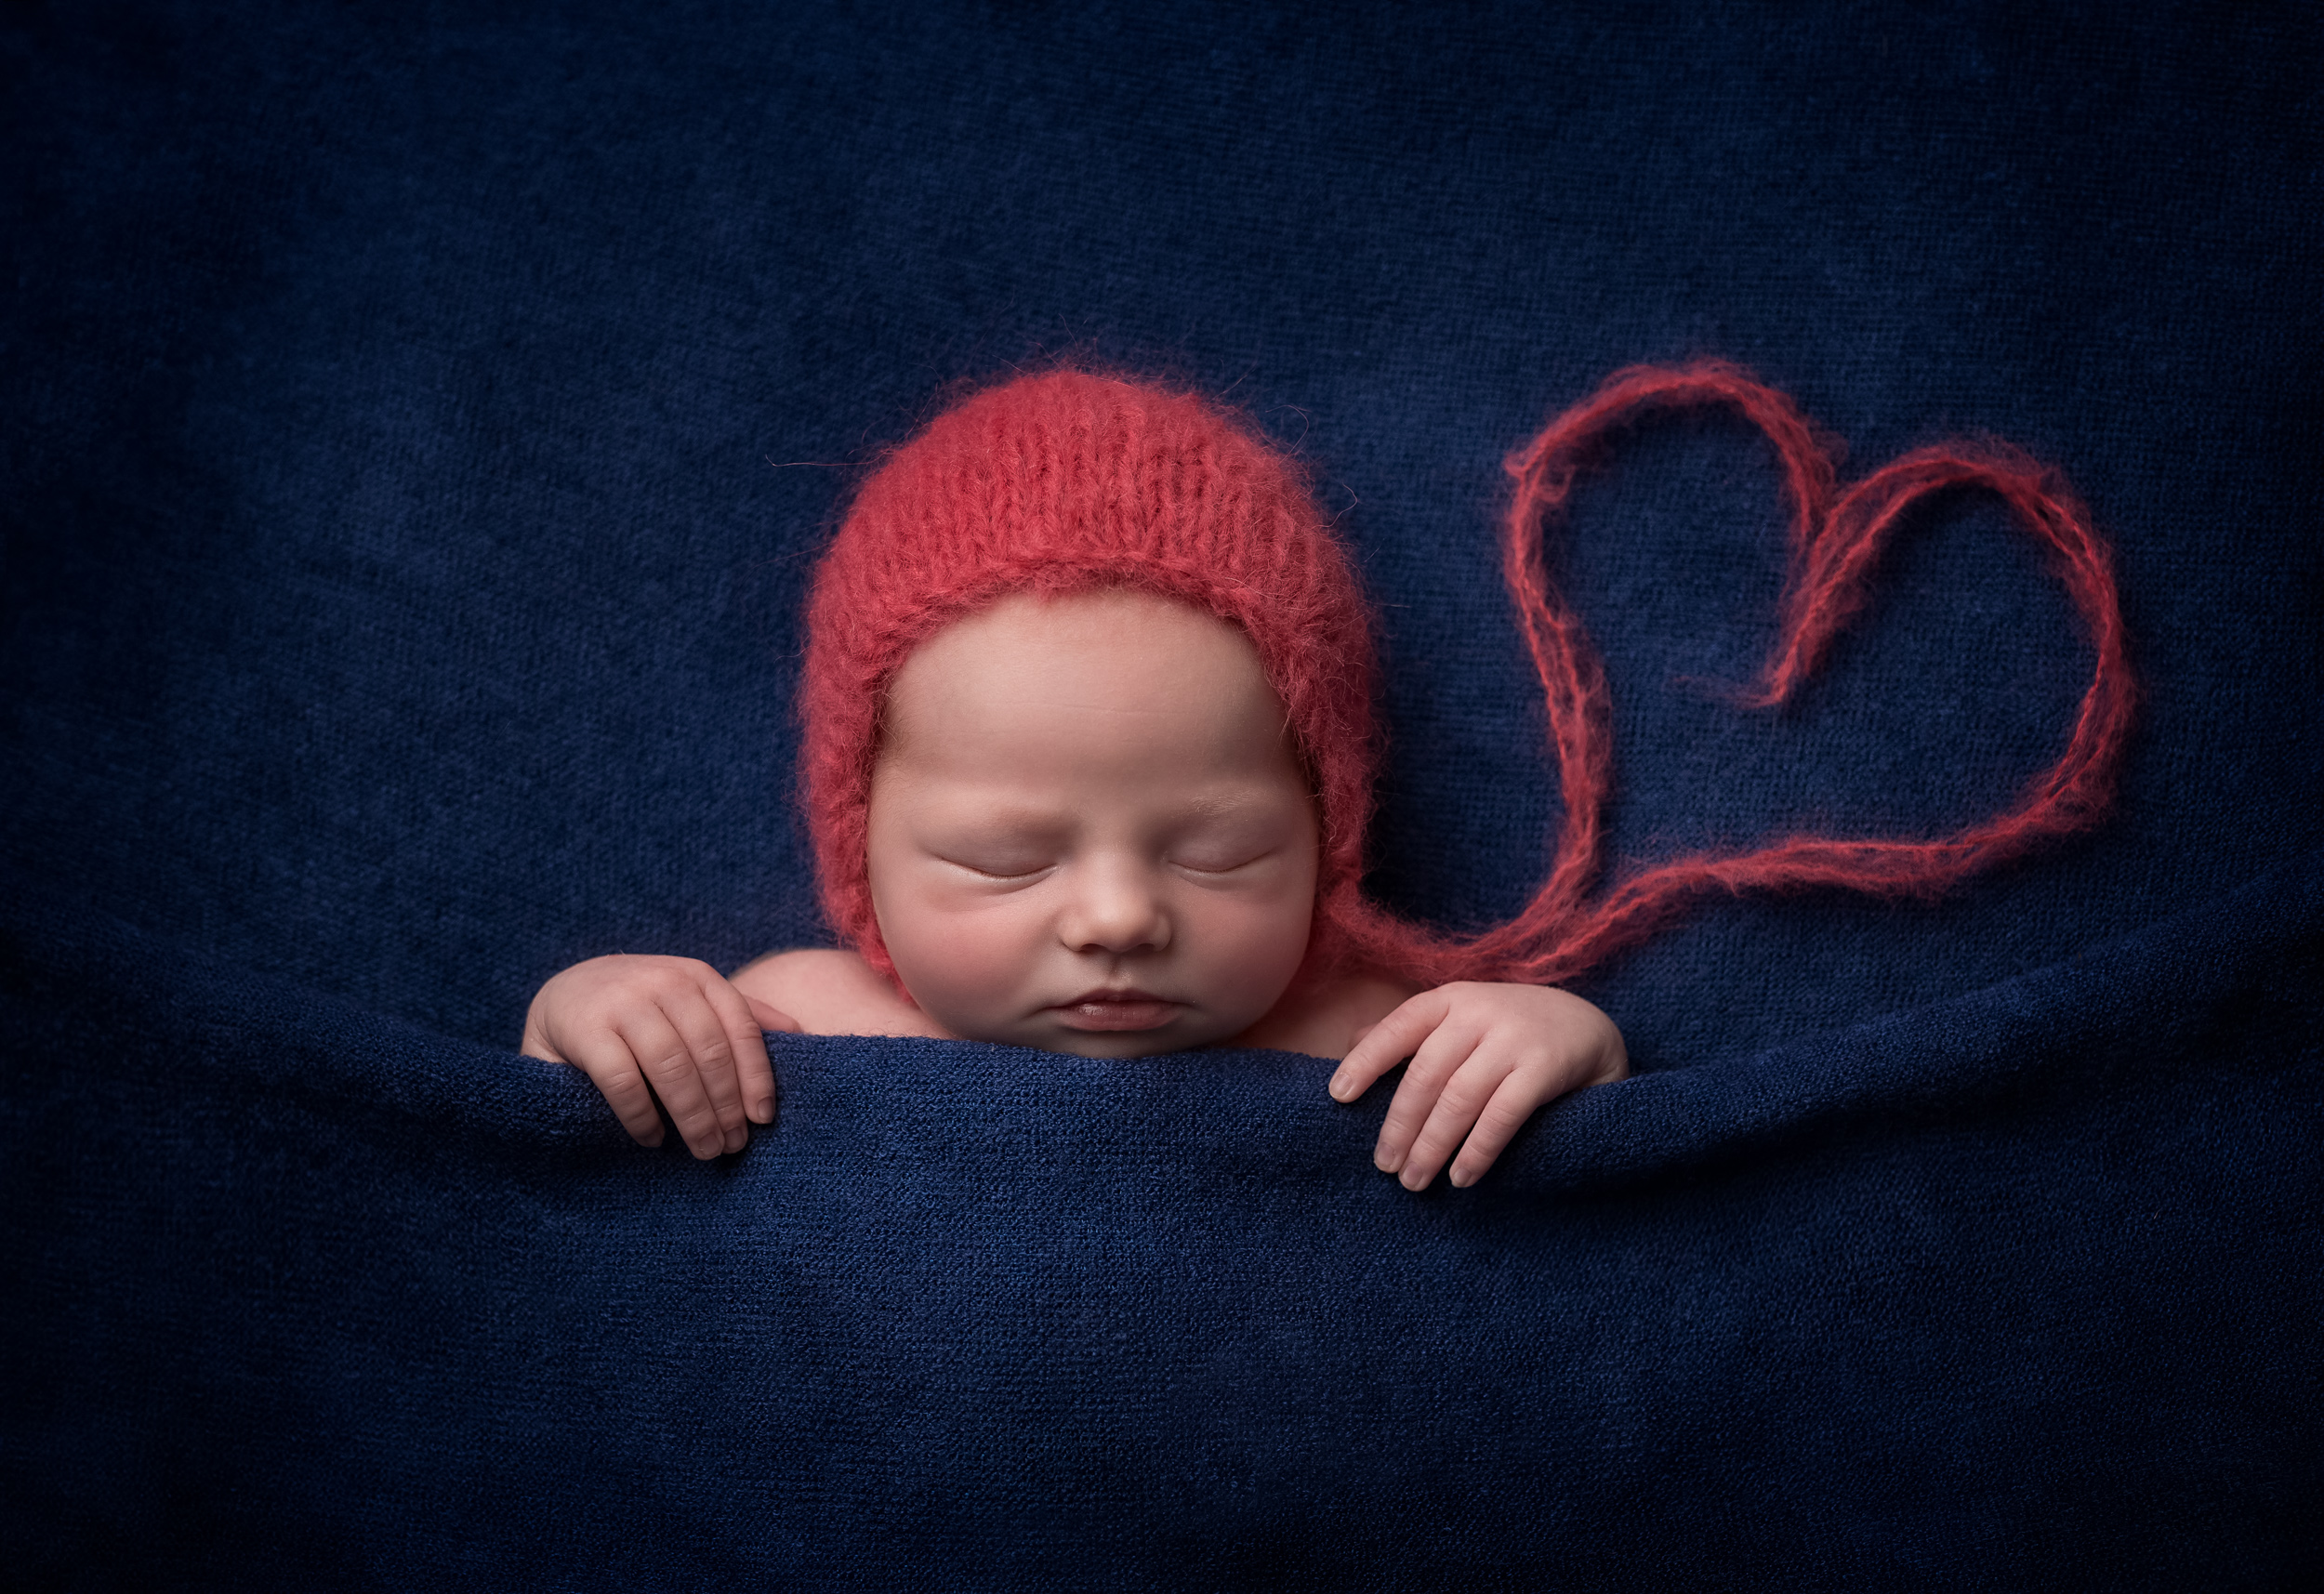 Sleeping newborn baby with bonnet on and heart in striking image by Cheshire newborn photographer in Sandbach